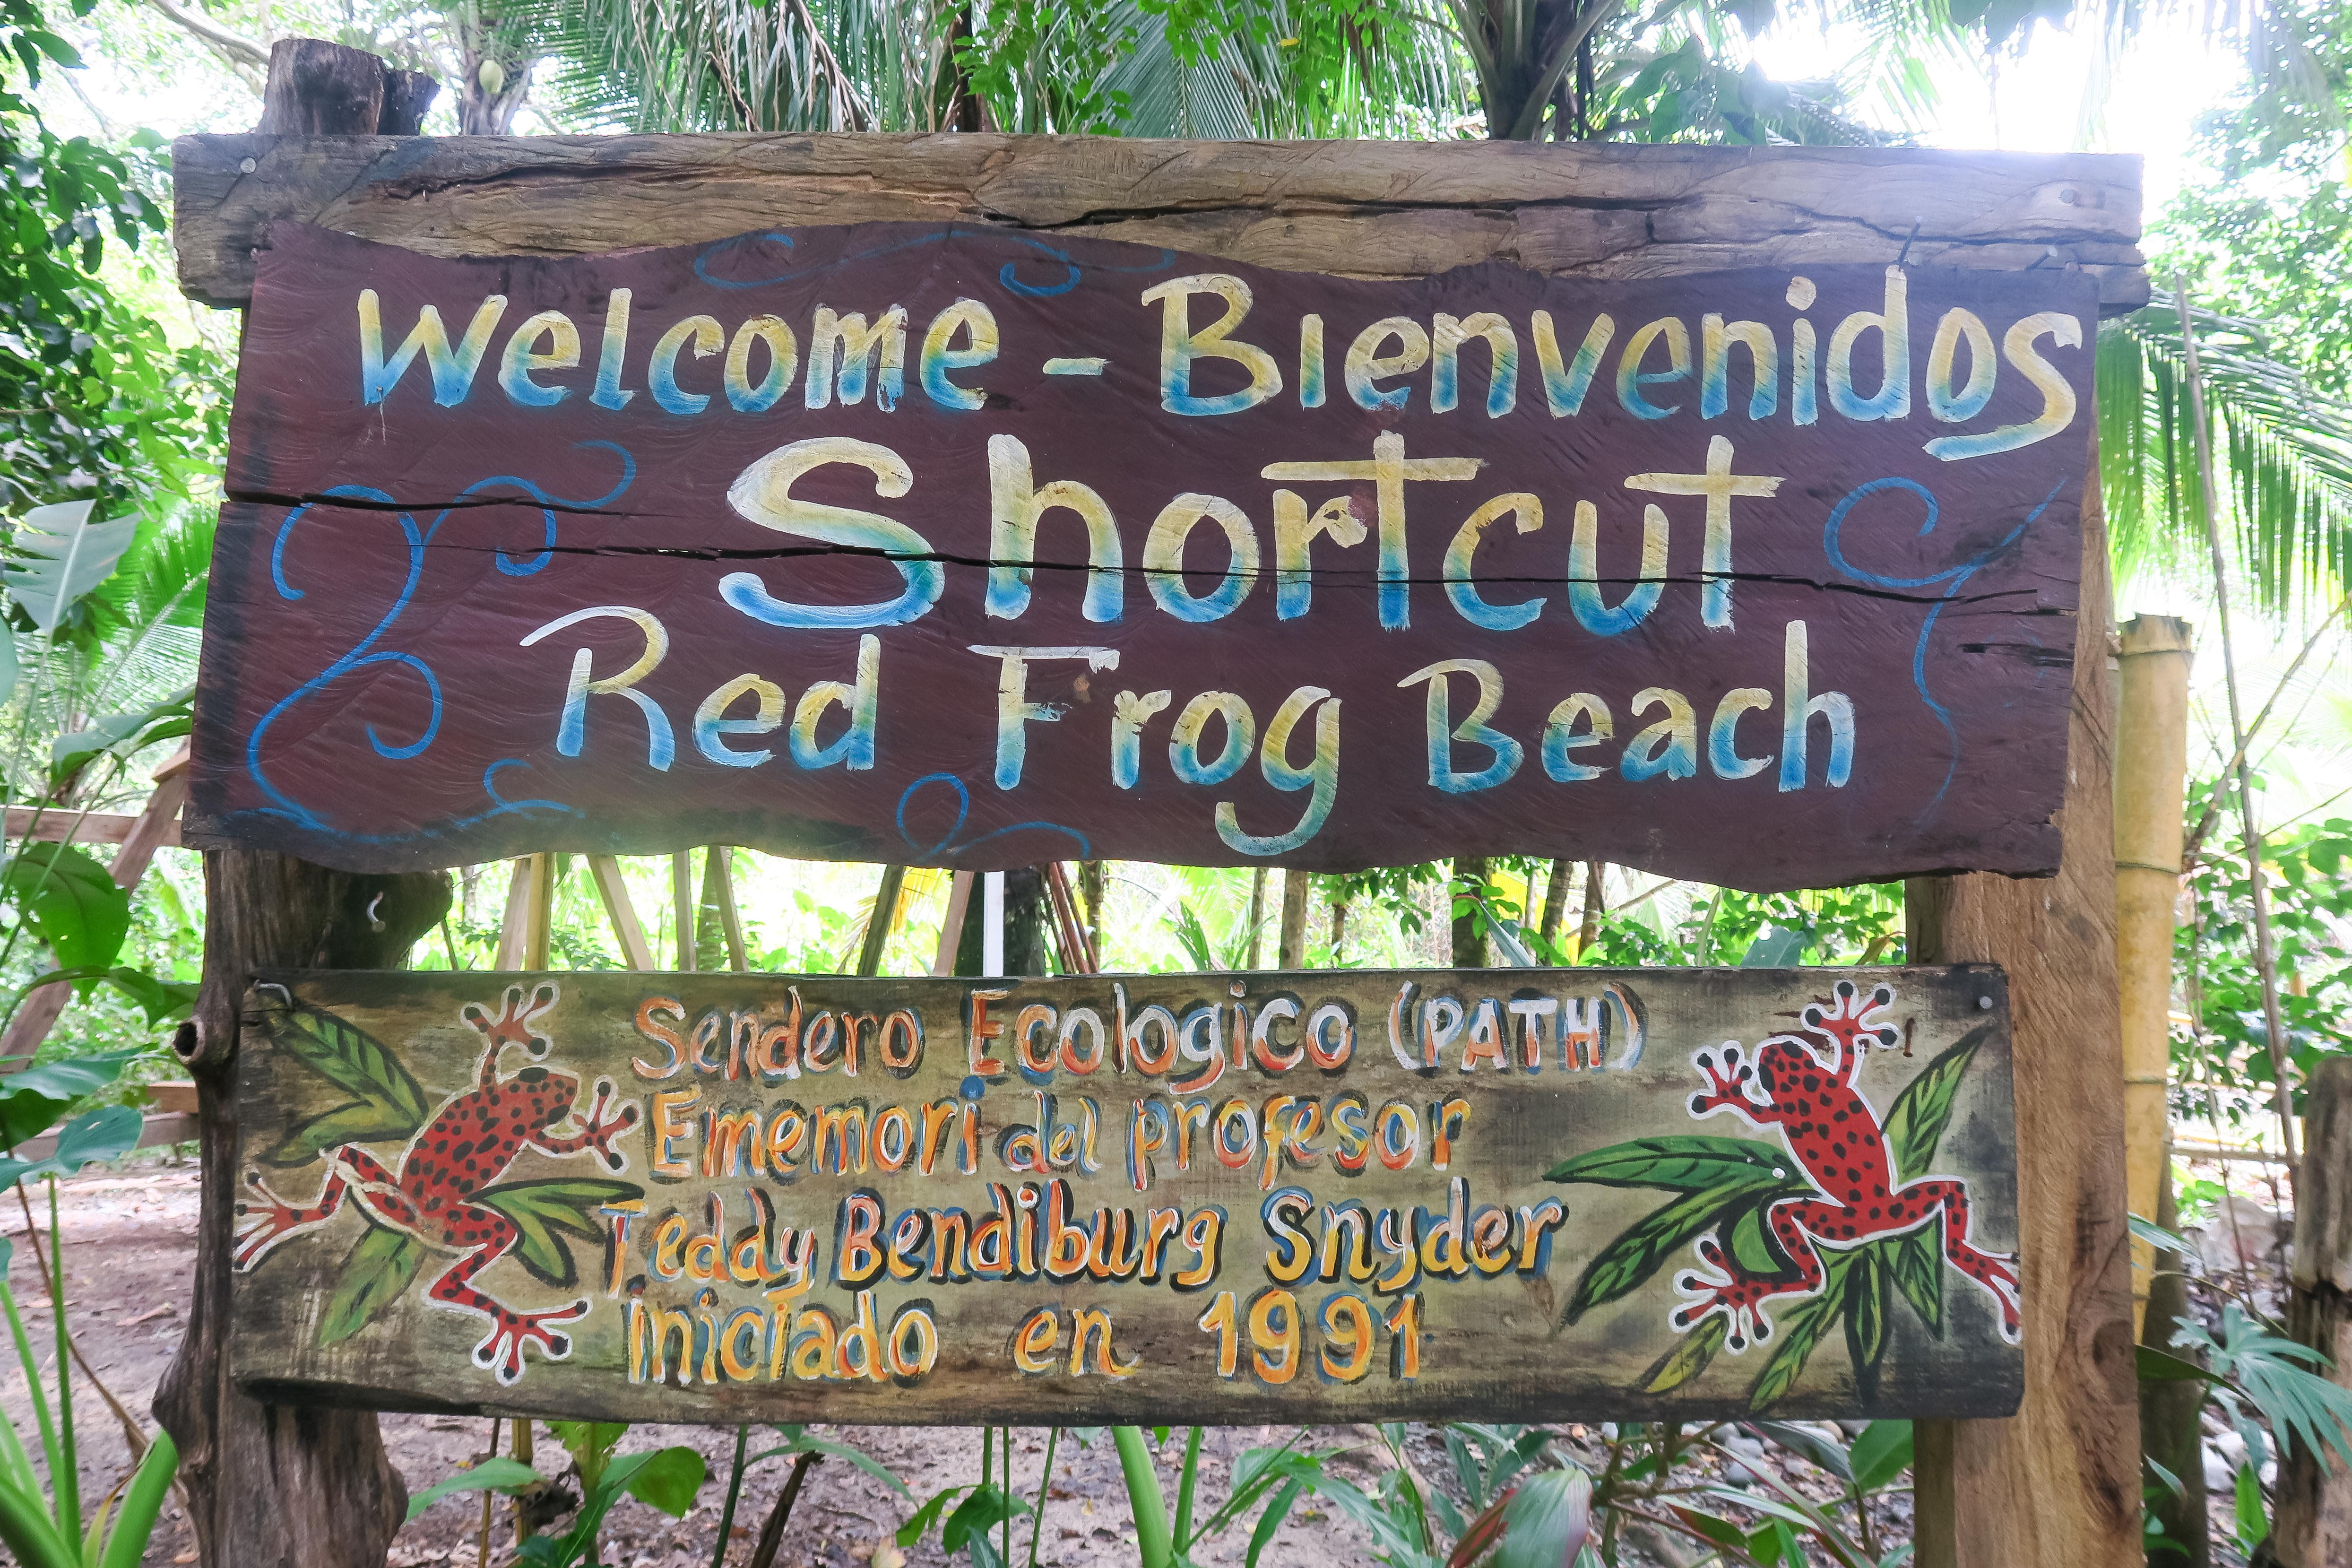 Red Frog Beach, Panama. Travel Diary by Rosie Andre (bocas, panama, costa rica, bastimentos, beach, plage, destination, wildlife, nature, photo, photography, photographs, discover, learn, explore, wanderlust, bucketlist, central america, latin, what to see, do, resorts, islands, rainforests)